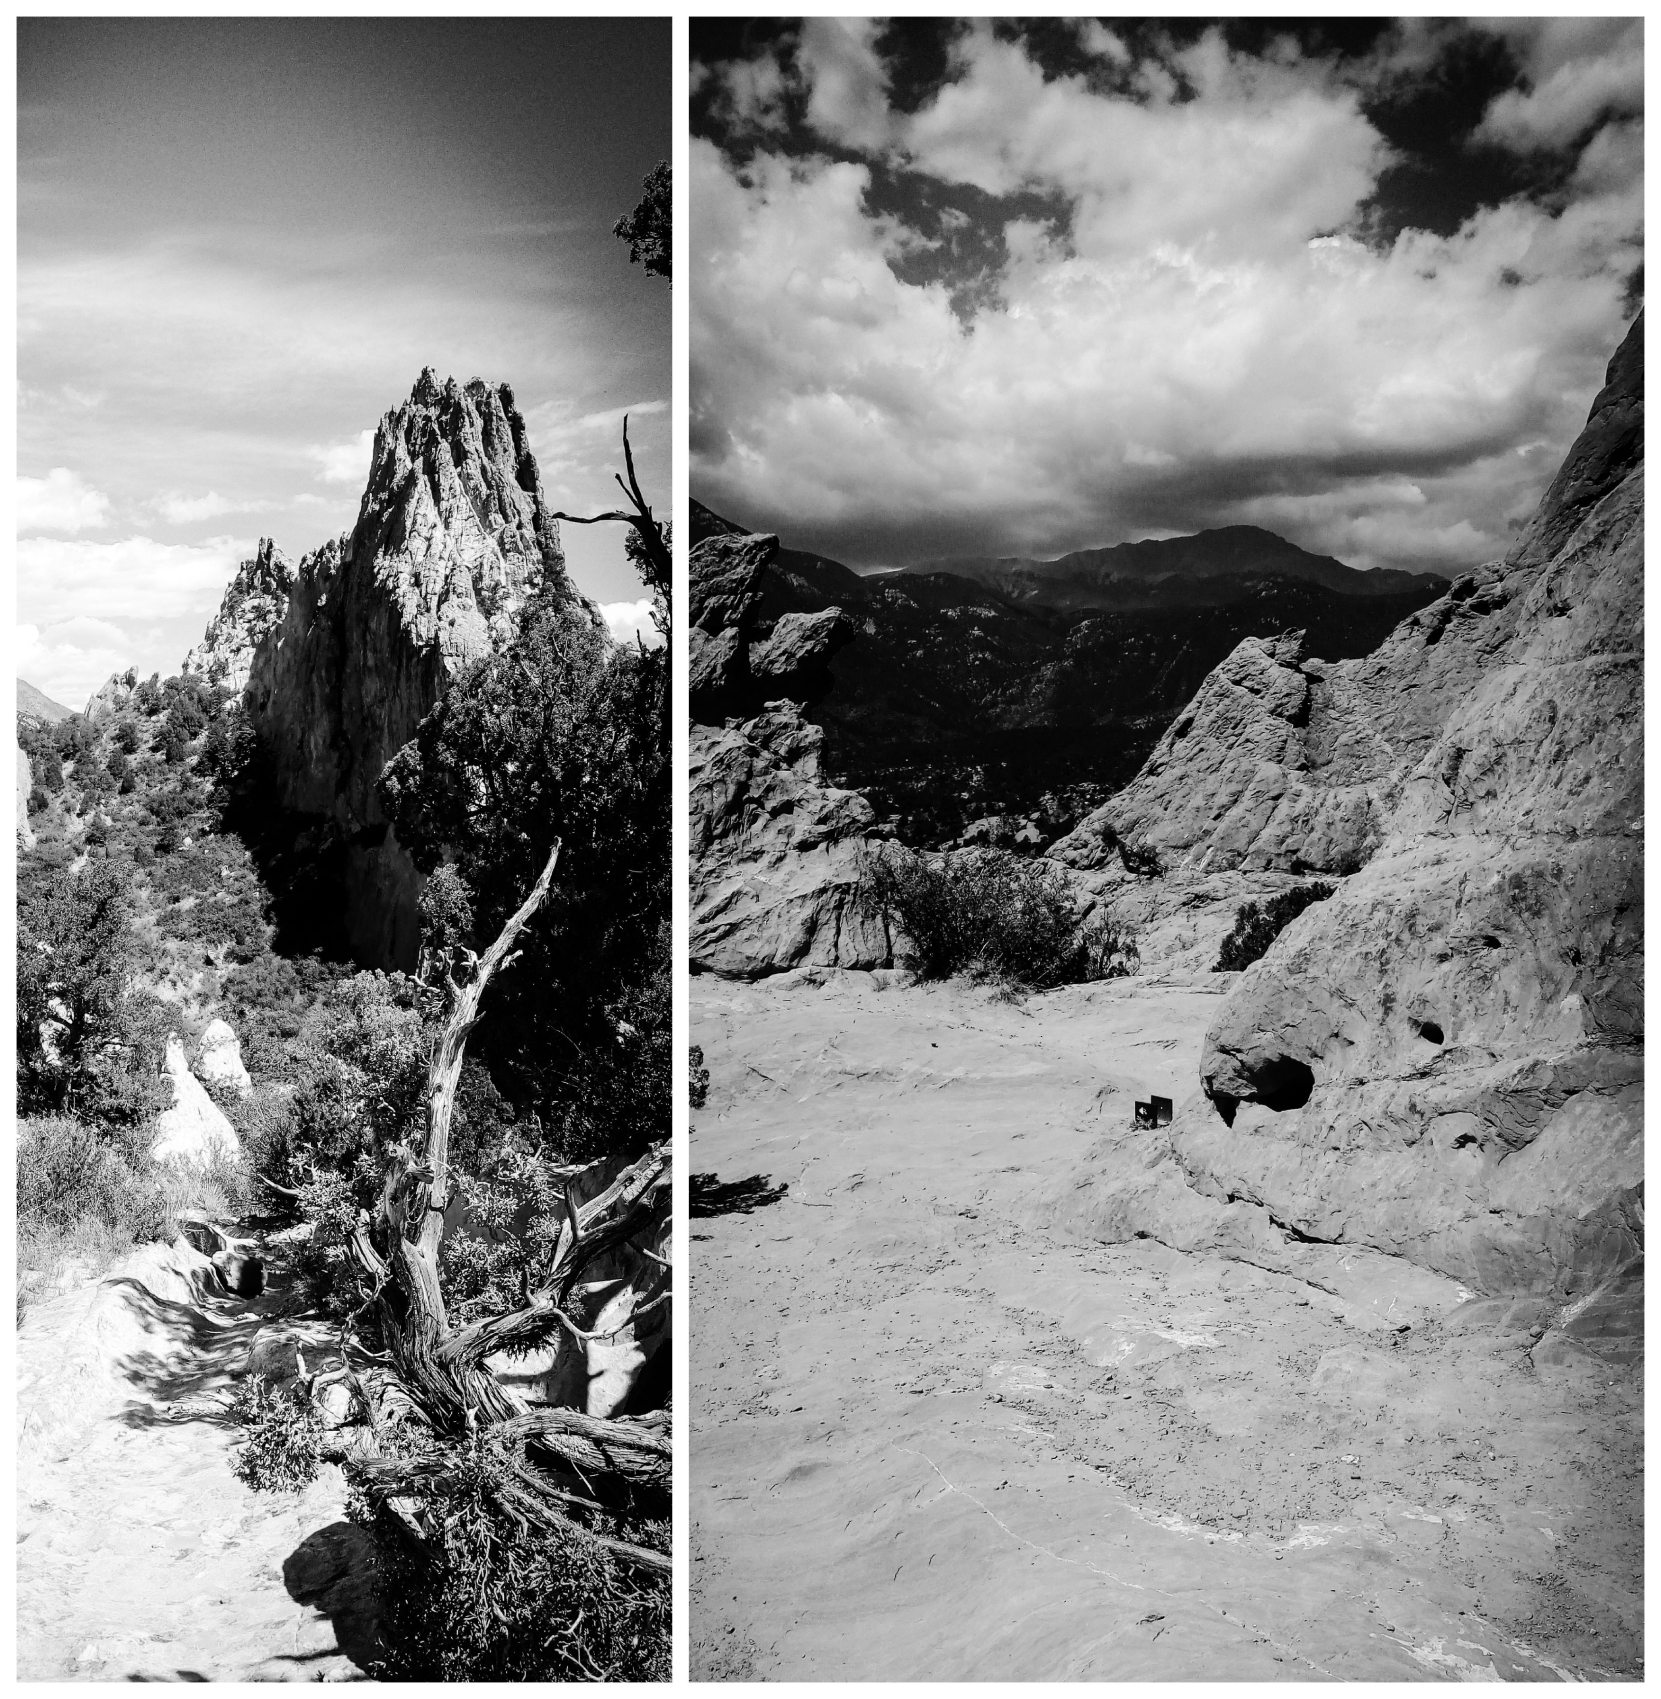 Nature Photos B&W - Colorado Springs, Colorado, US. 'Garden of the Gods.' The area is popular with cyclists and hikers, and has 21 miles of trails. sketchbookexplorer.com @davidasutton @sketchbookexplorer Facebook.com/davidanthonysutton #gardenofthegods #colorado #coloradosprings #unitedstates #USA #travel #travelblog #photography #nature #wildwest